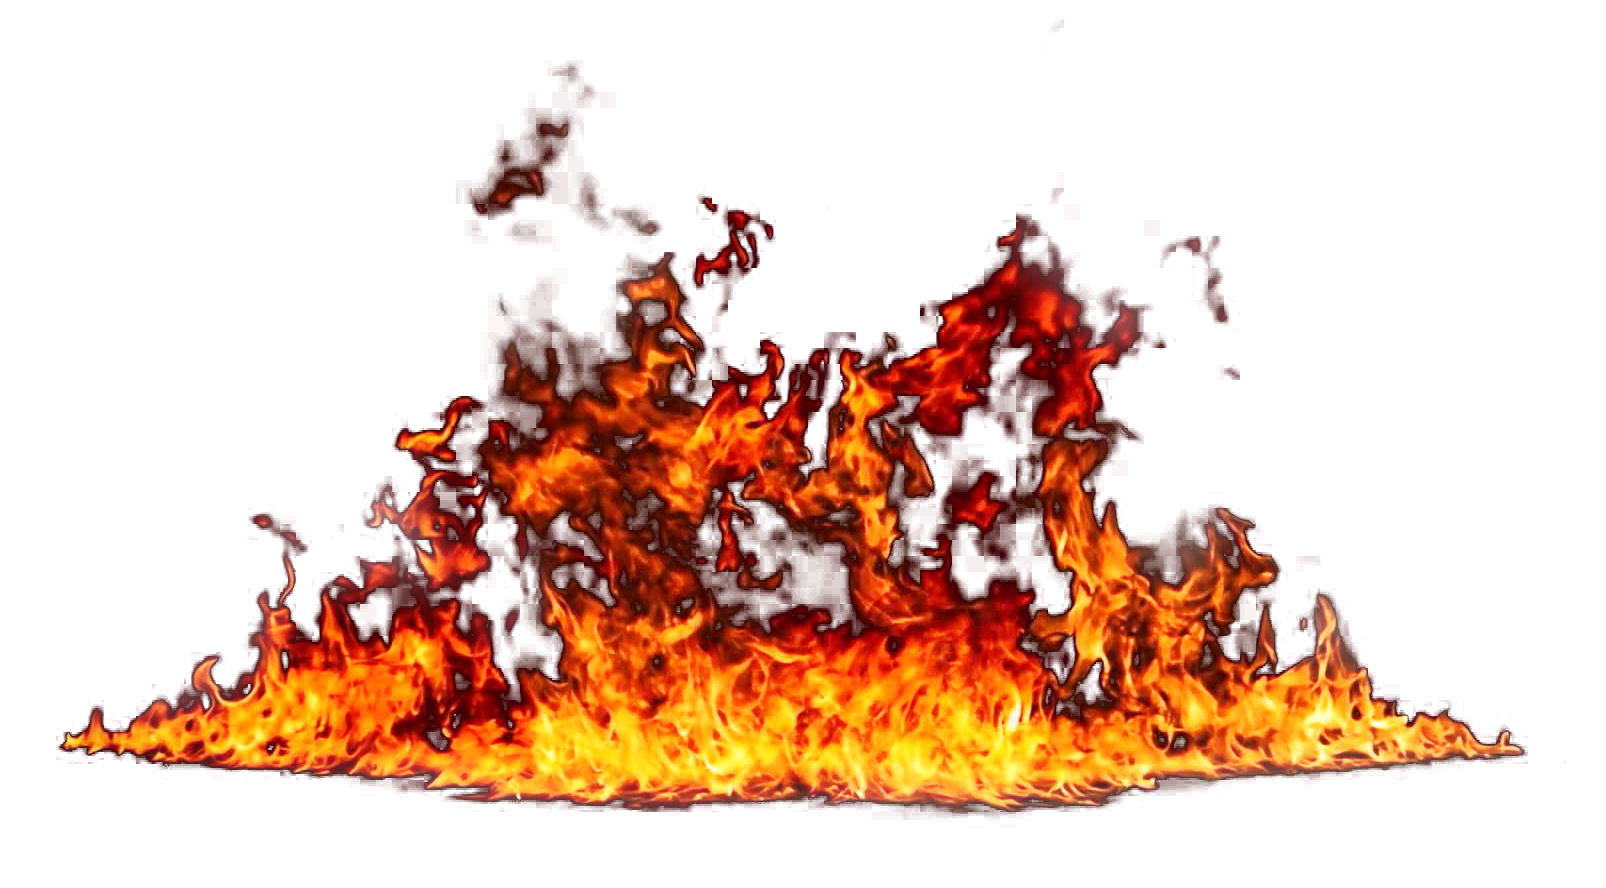 Big Fire Flame PNG Image